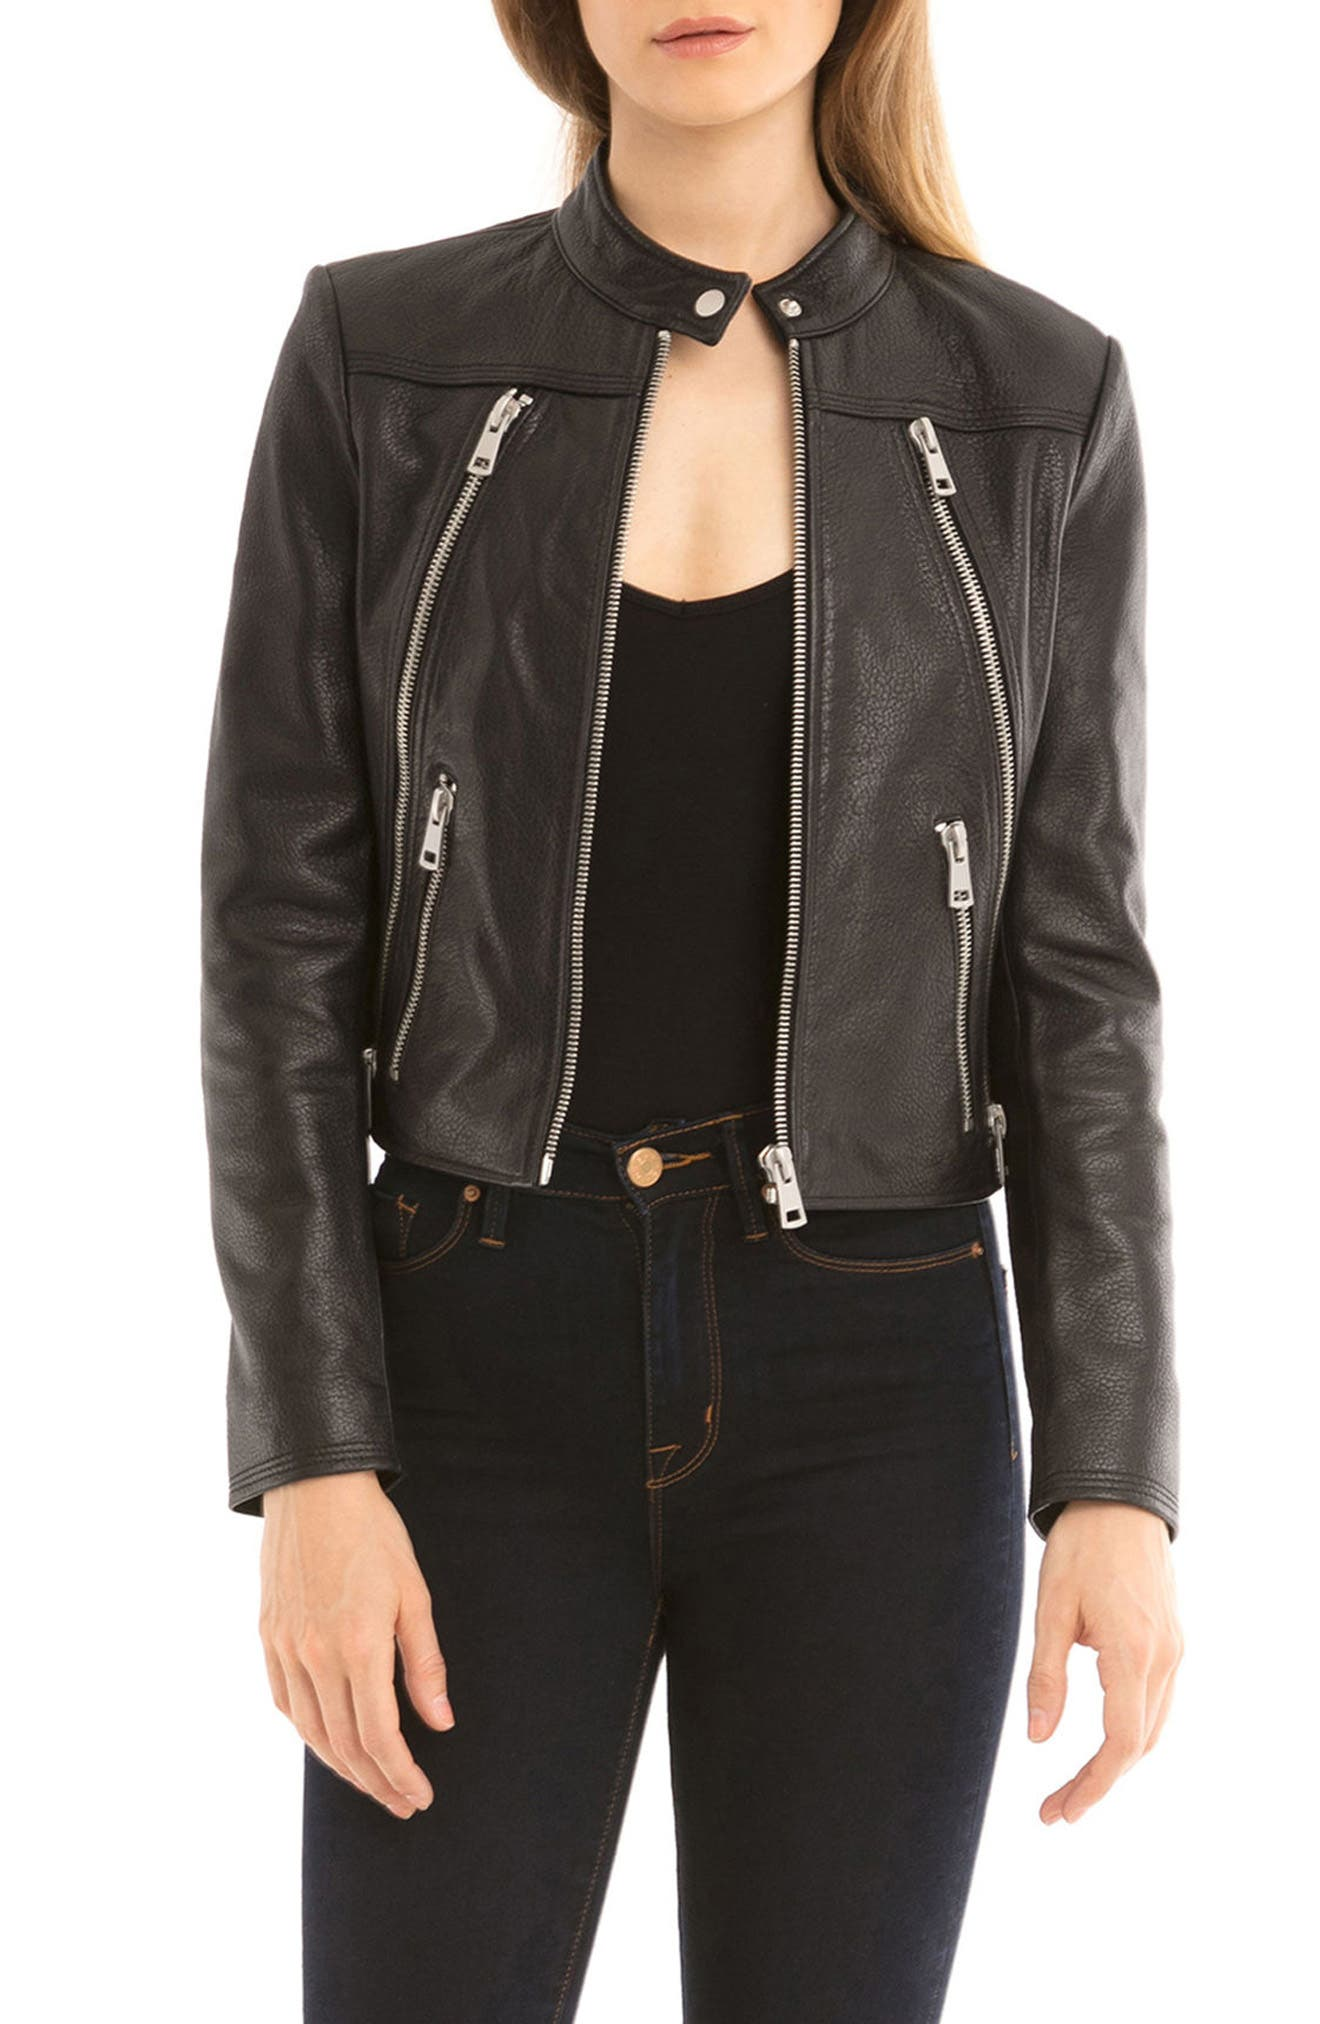 Main Image - Bagatelle Textured Leather Jacket